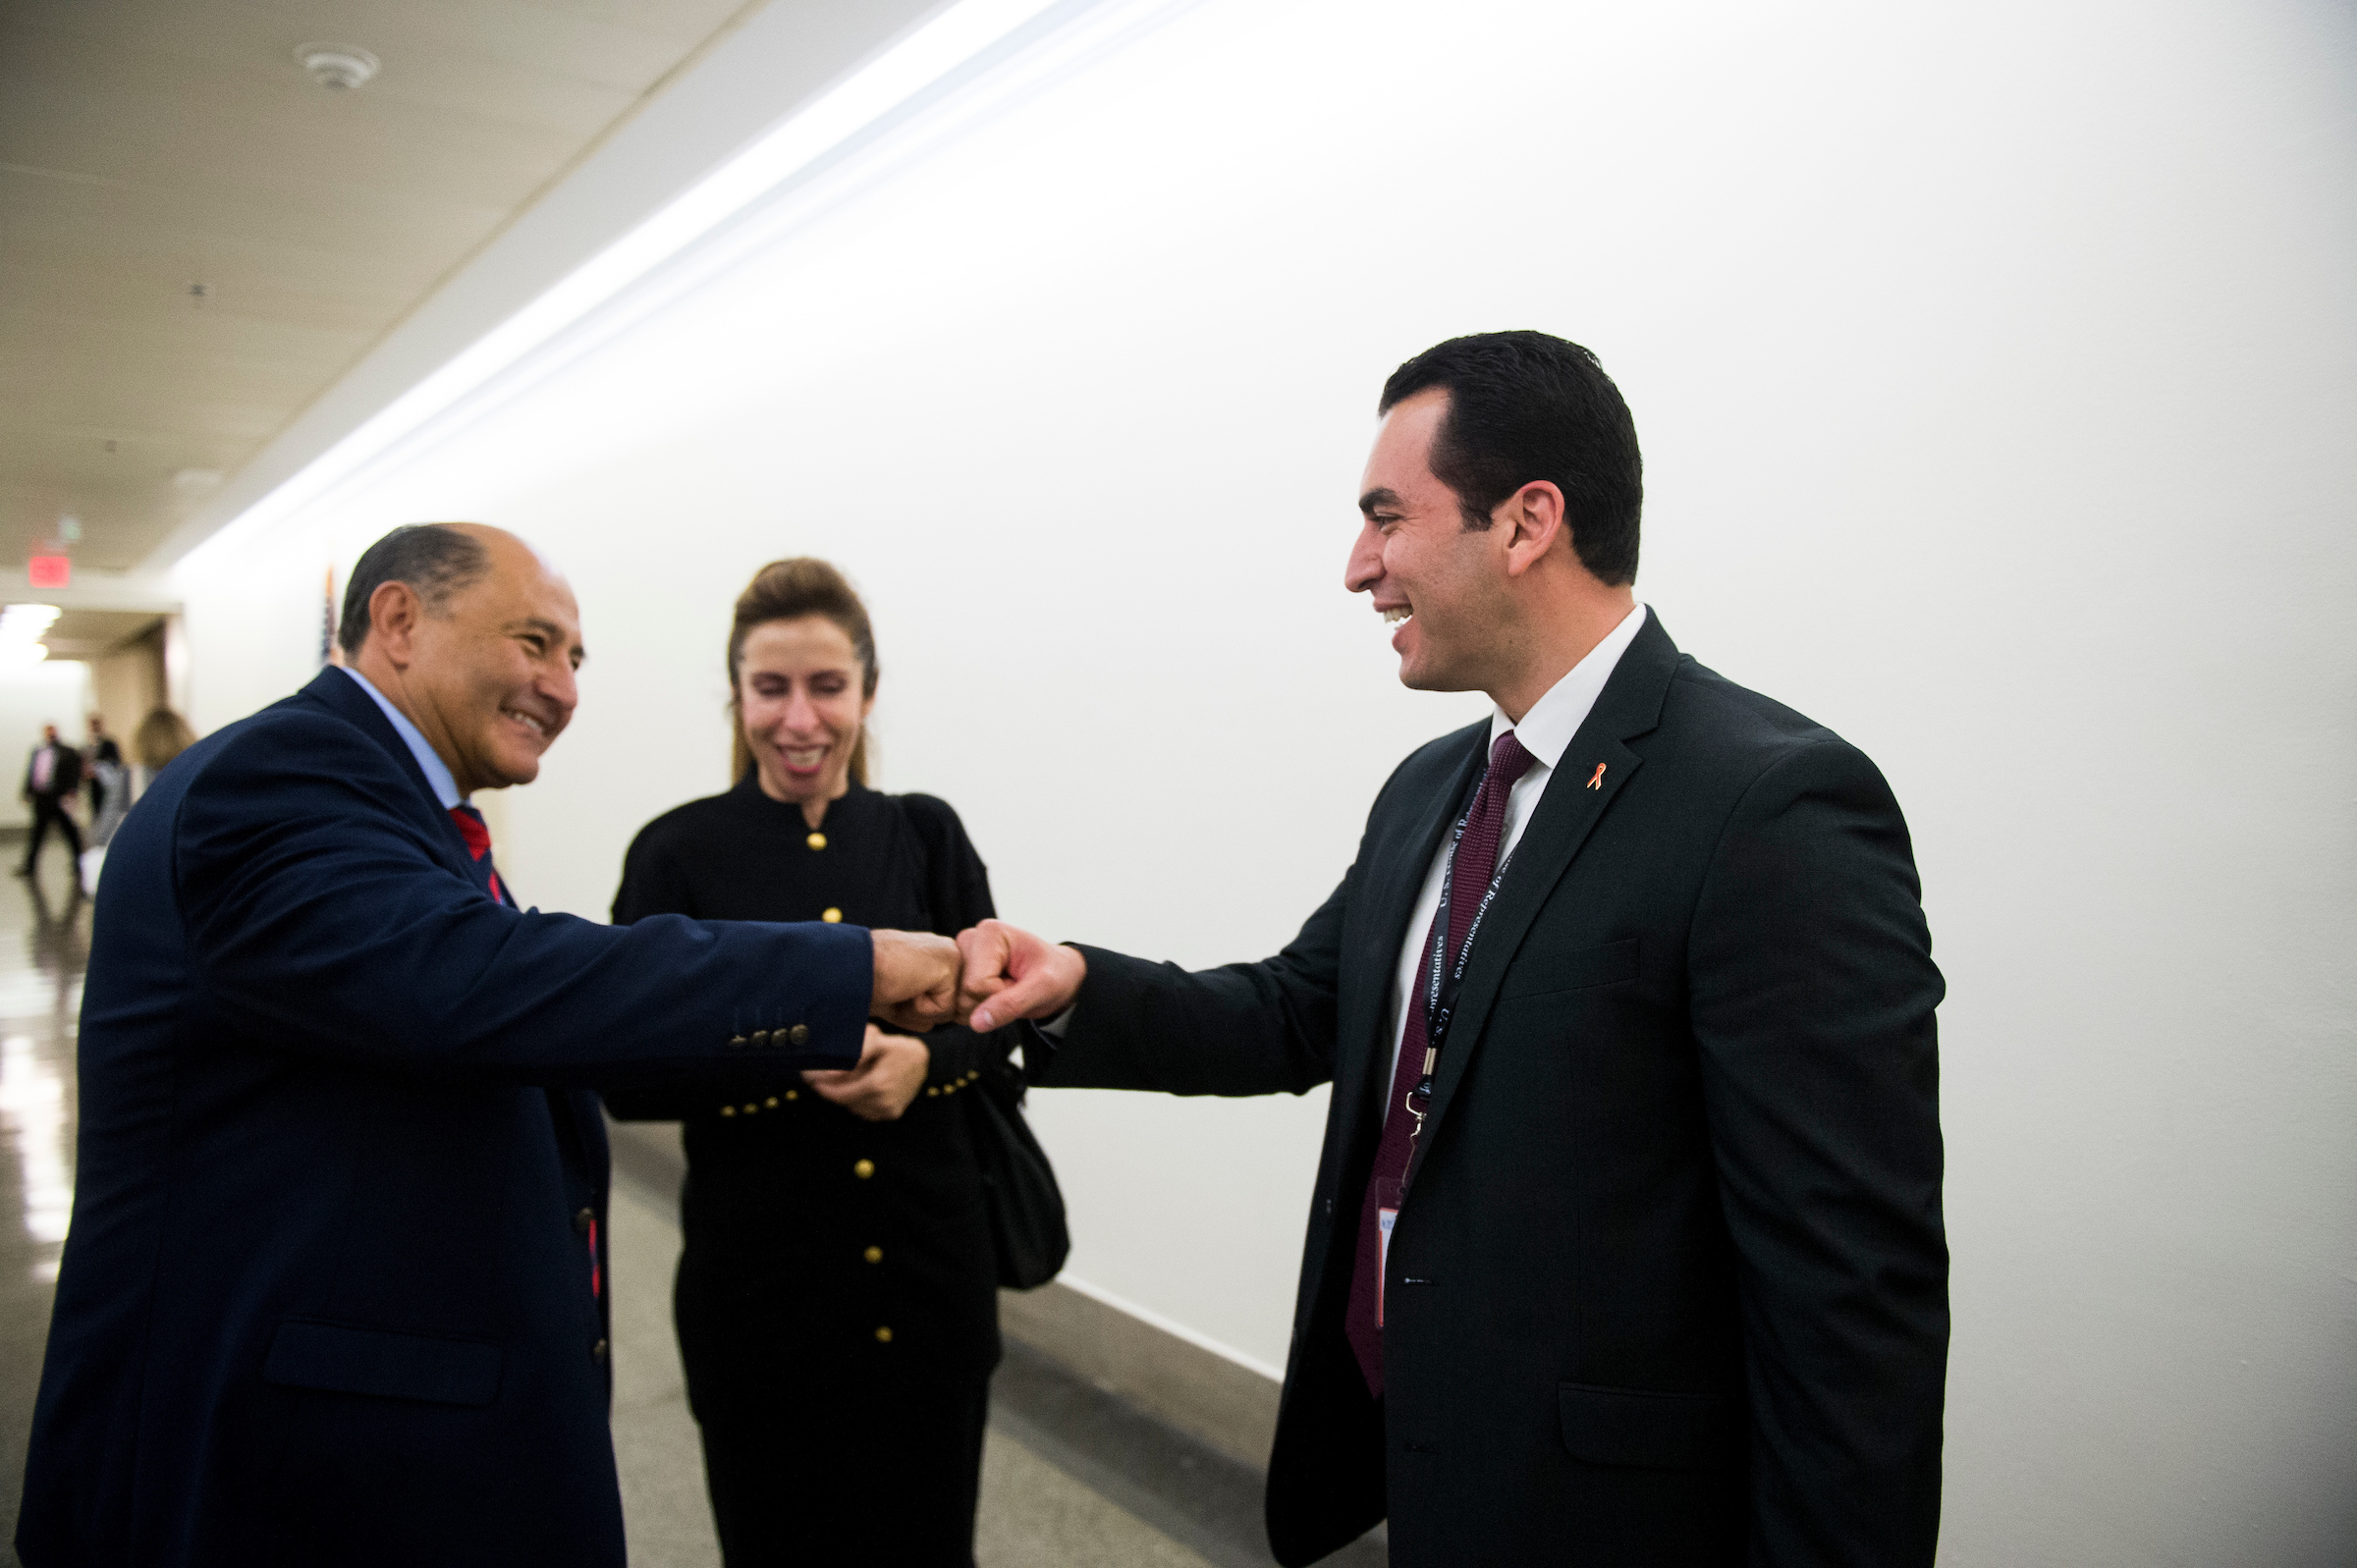 """California Rep.-elect <a class=""""memberLink"""" title=""""Click to view member info in a new window"""" href=""""http://data.rollcall.com/members/97931?rel=memberLink"""" target=""""_blank"""">Lou Correa</a>, left, gives Kihuen a fist-bump in the basement of the Longworth House Office Building on Thursday. (Bill Clark/CQ Roll Call)"""